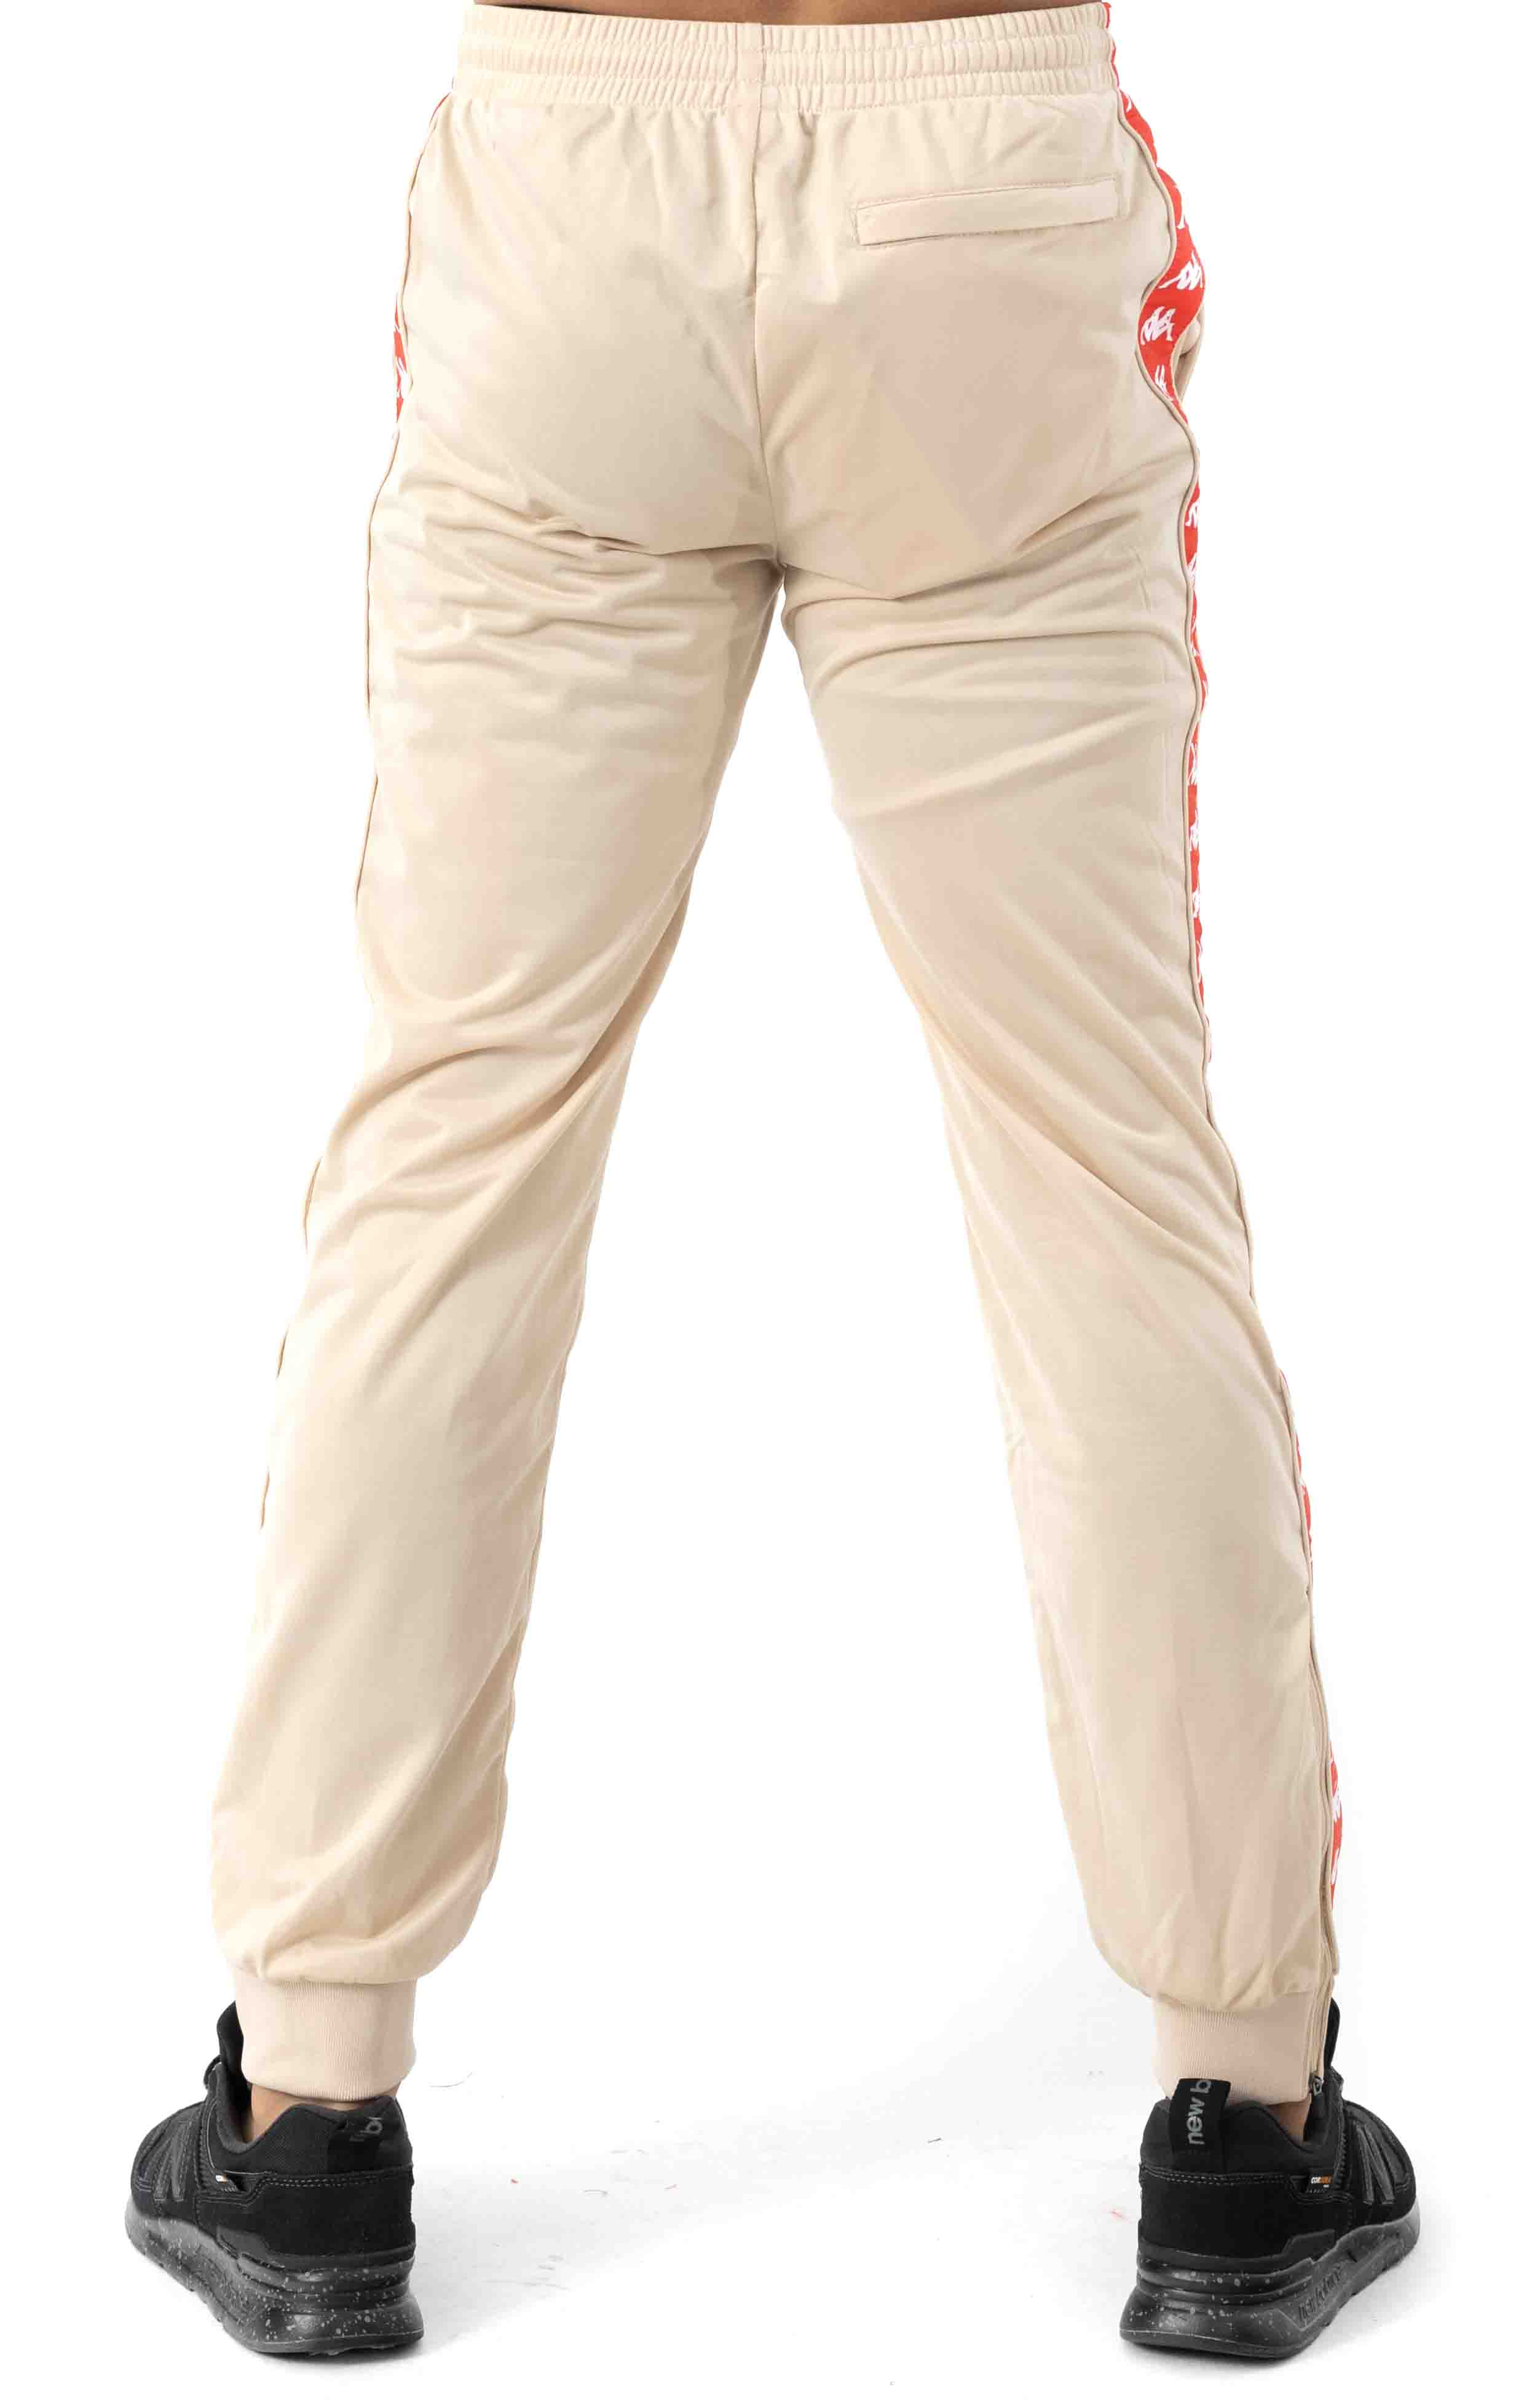 222 Banda Rastoriazz Trackpant - Beige/Red Flame 3